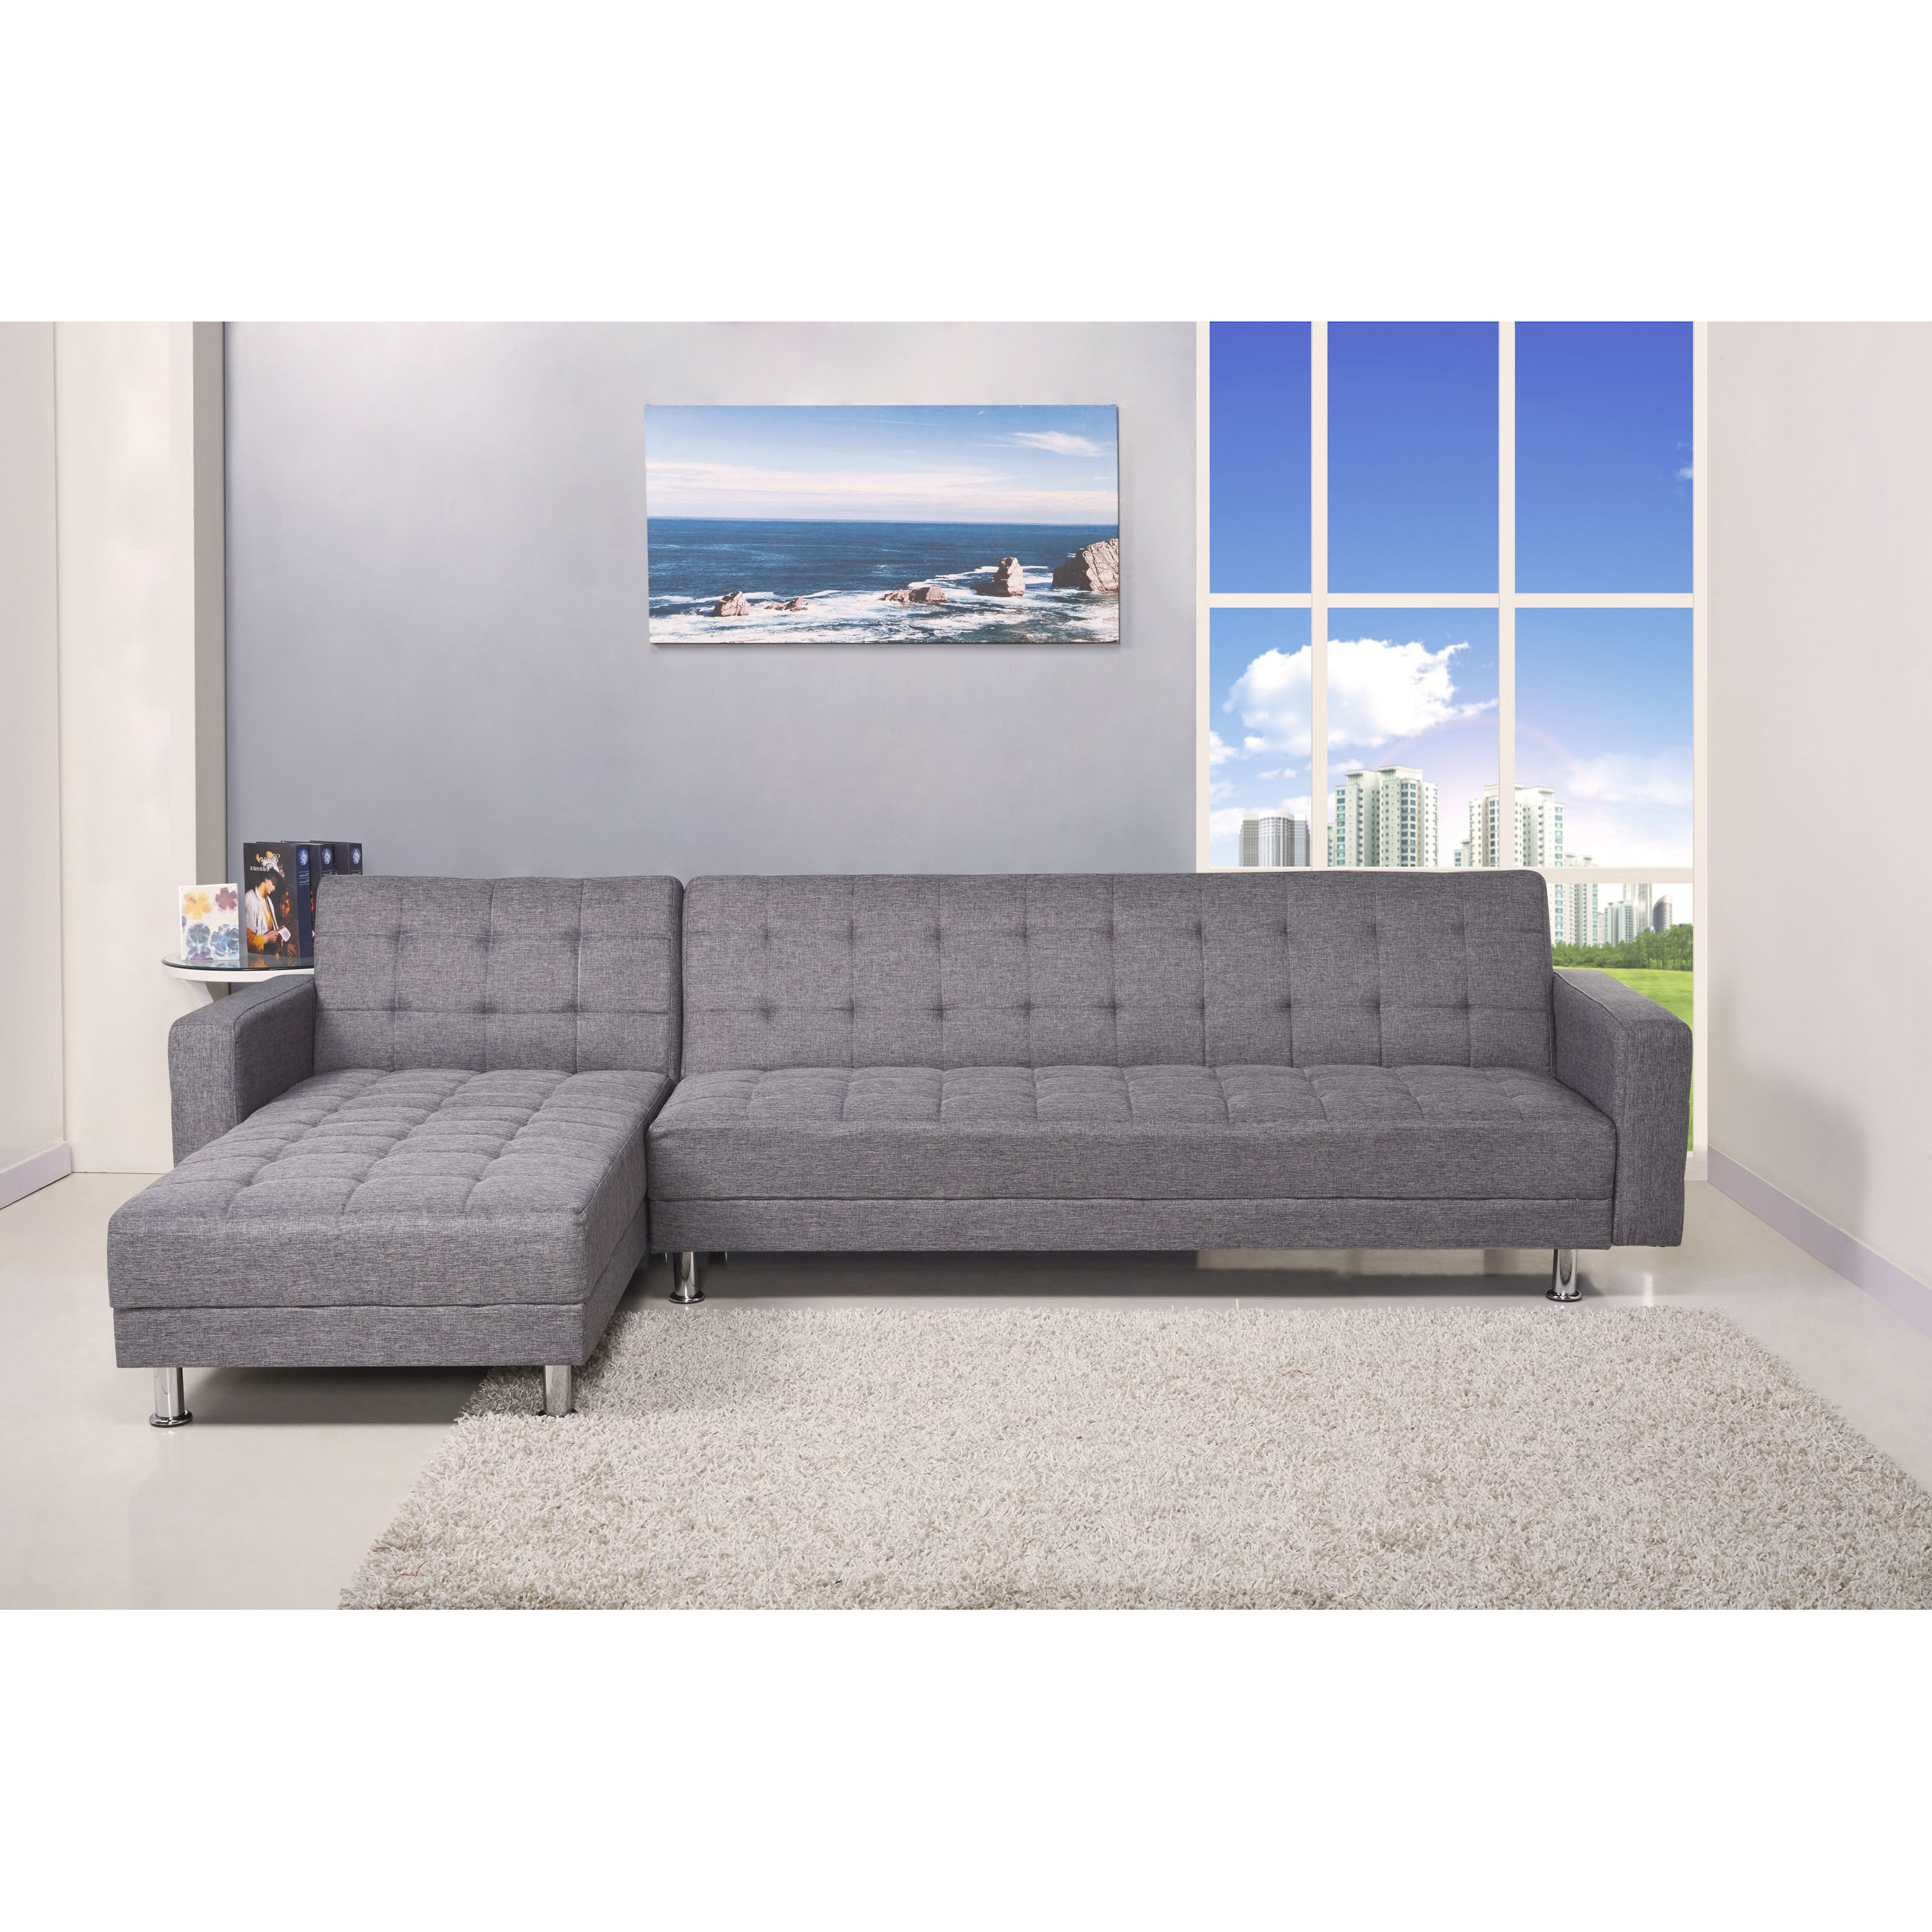 Sectional Sleeper Sofa | Sleeper Sofa Ikea | Sofa Sleeper Sectional Sale